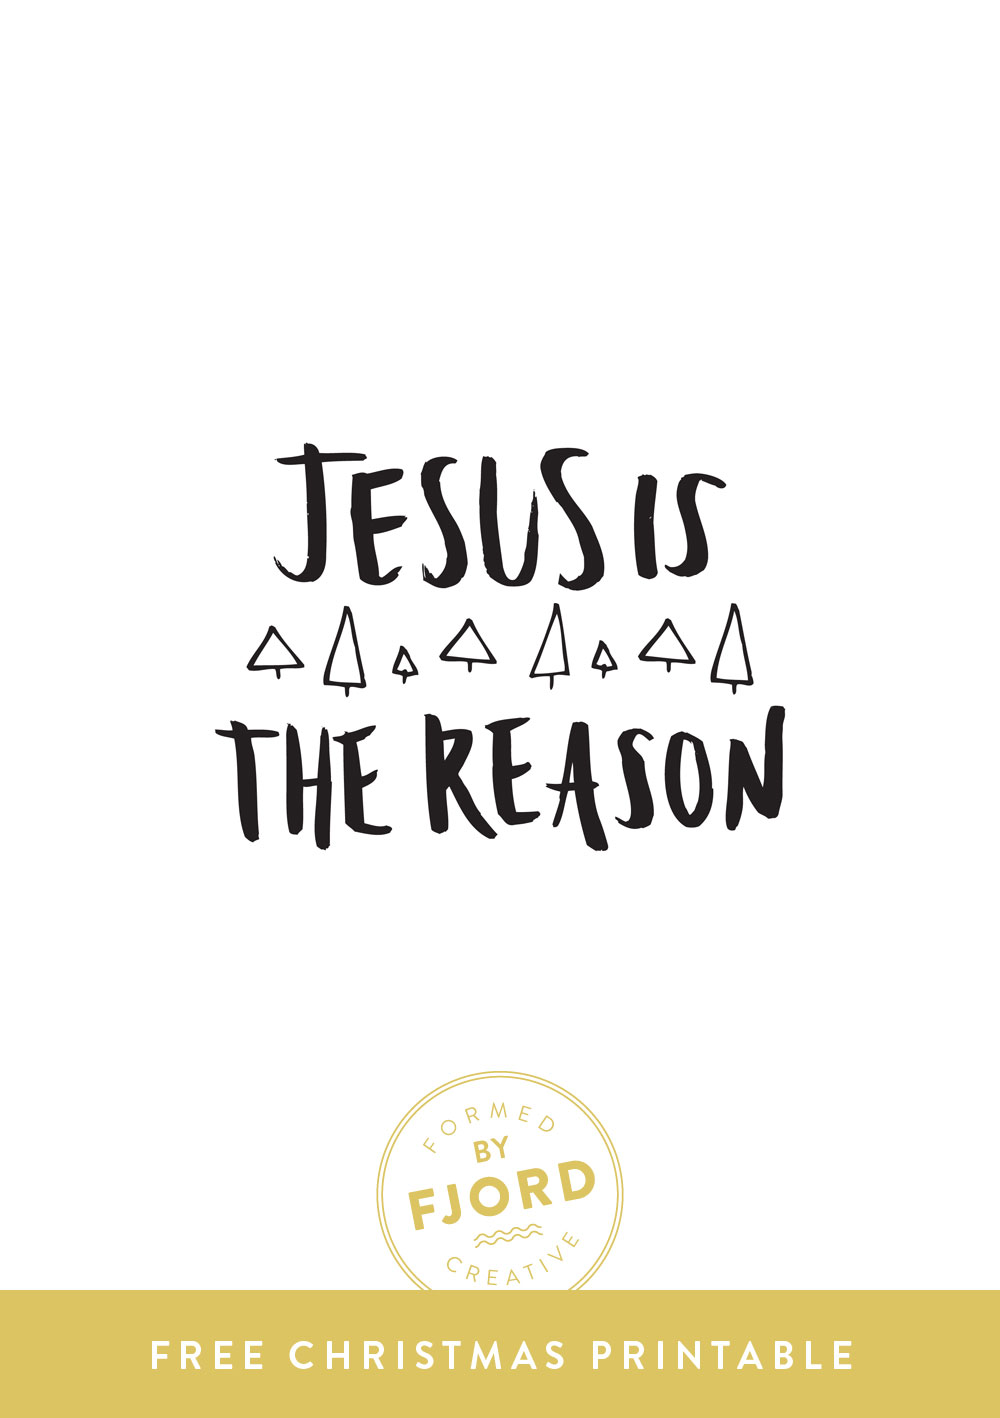 Free Christmas Printable by Fjord Creative // Jesus is the Reason